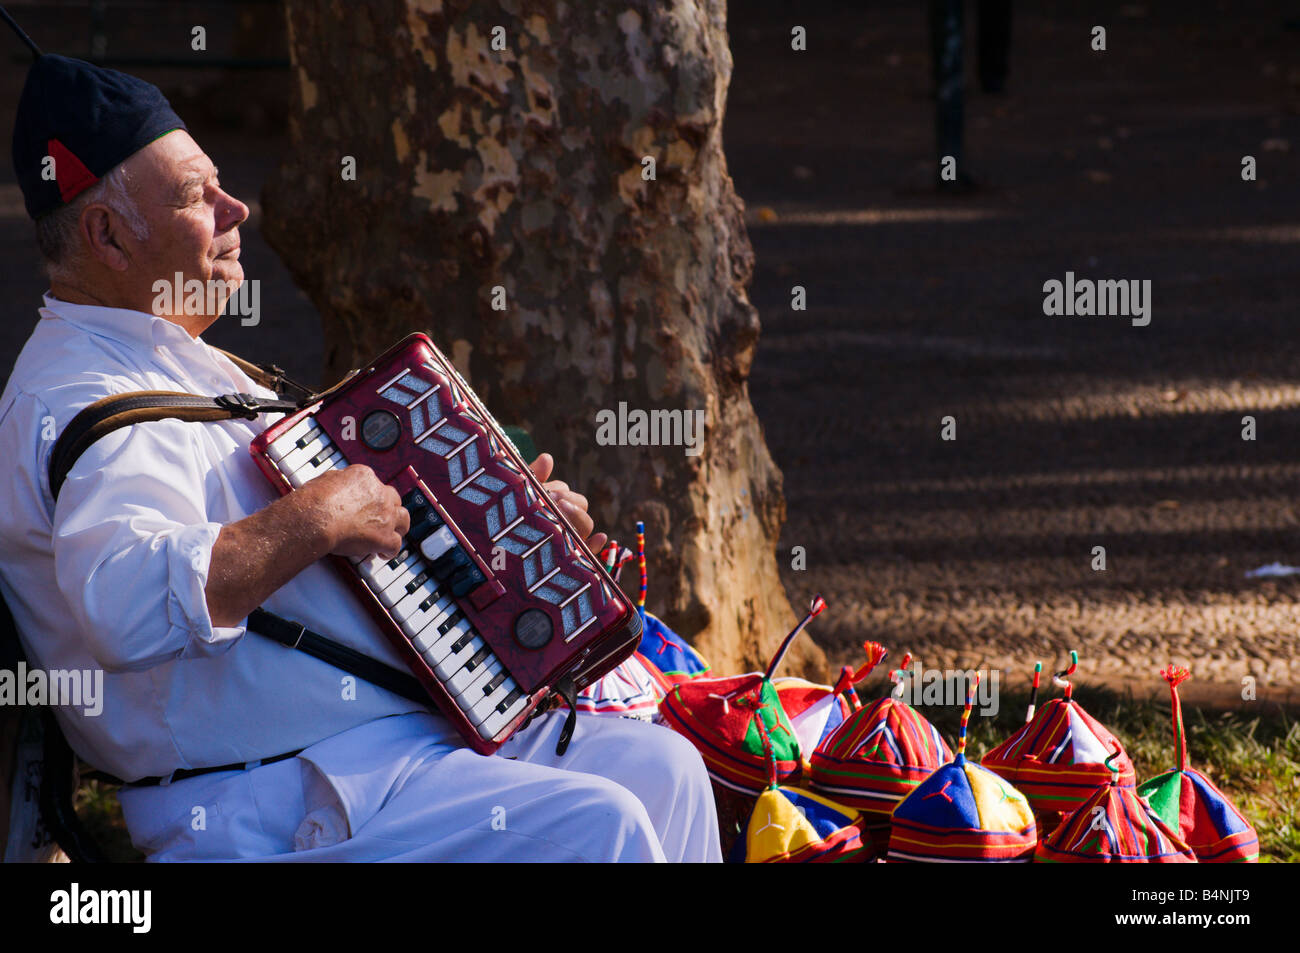 Accordionist and hat seller at Monte Funchal Madeira - Stock Image